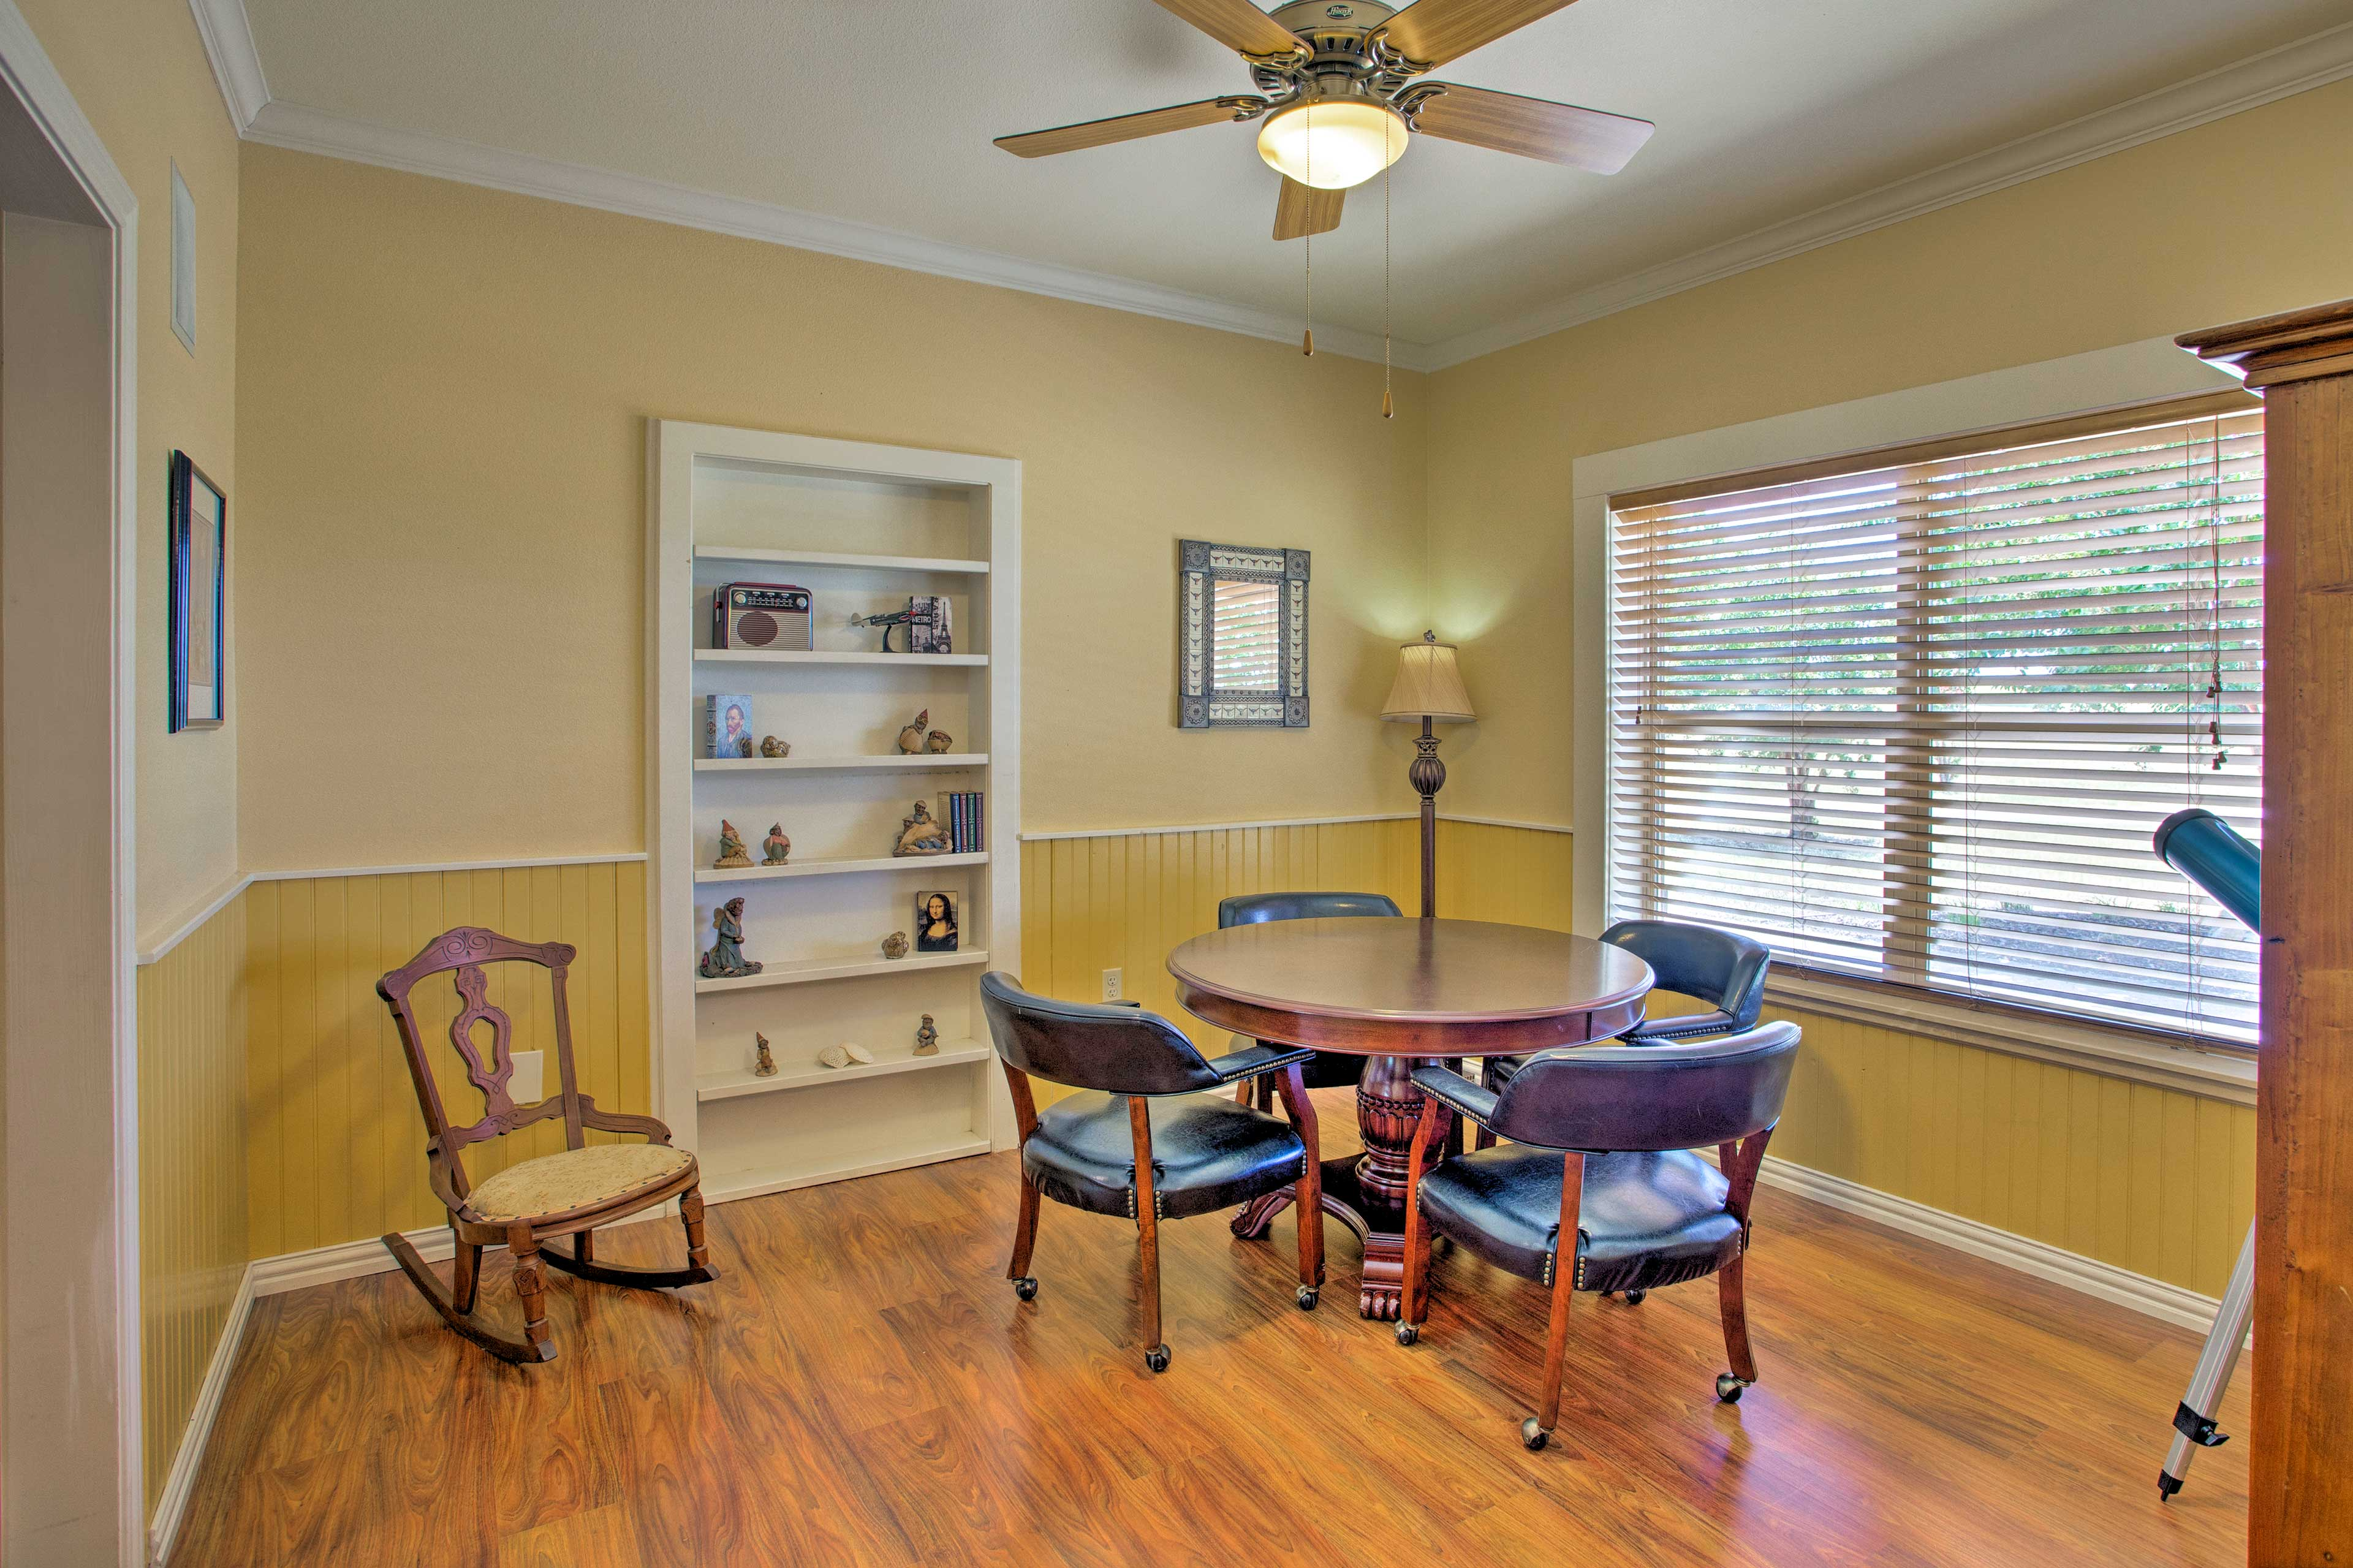 Bring your friendly Fidos to this spacious house!